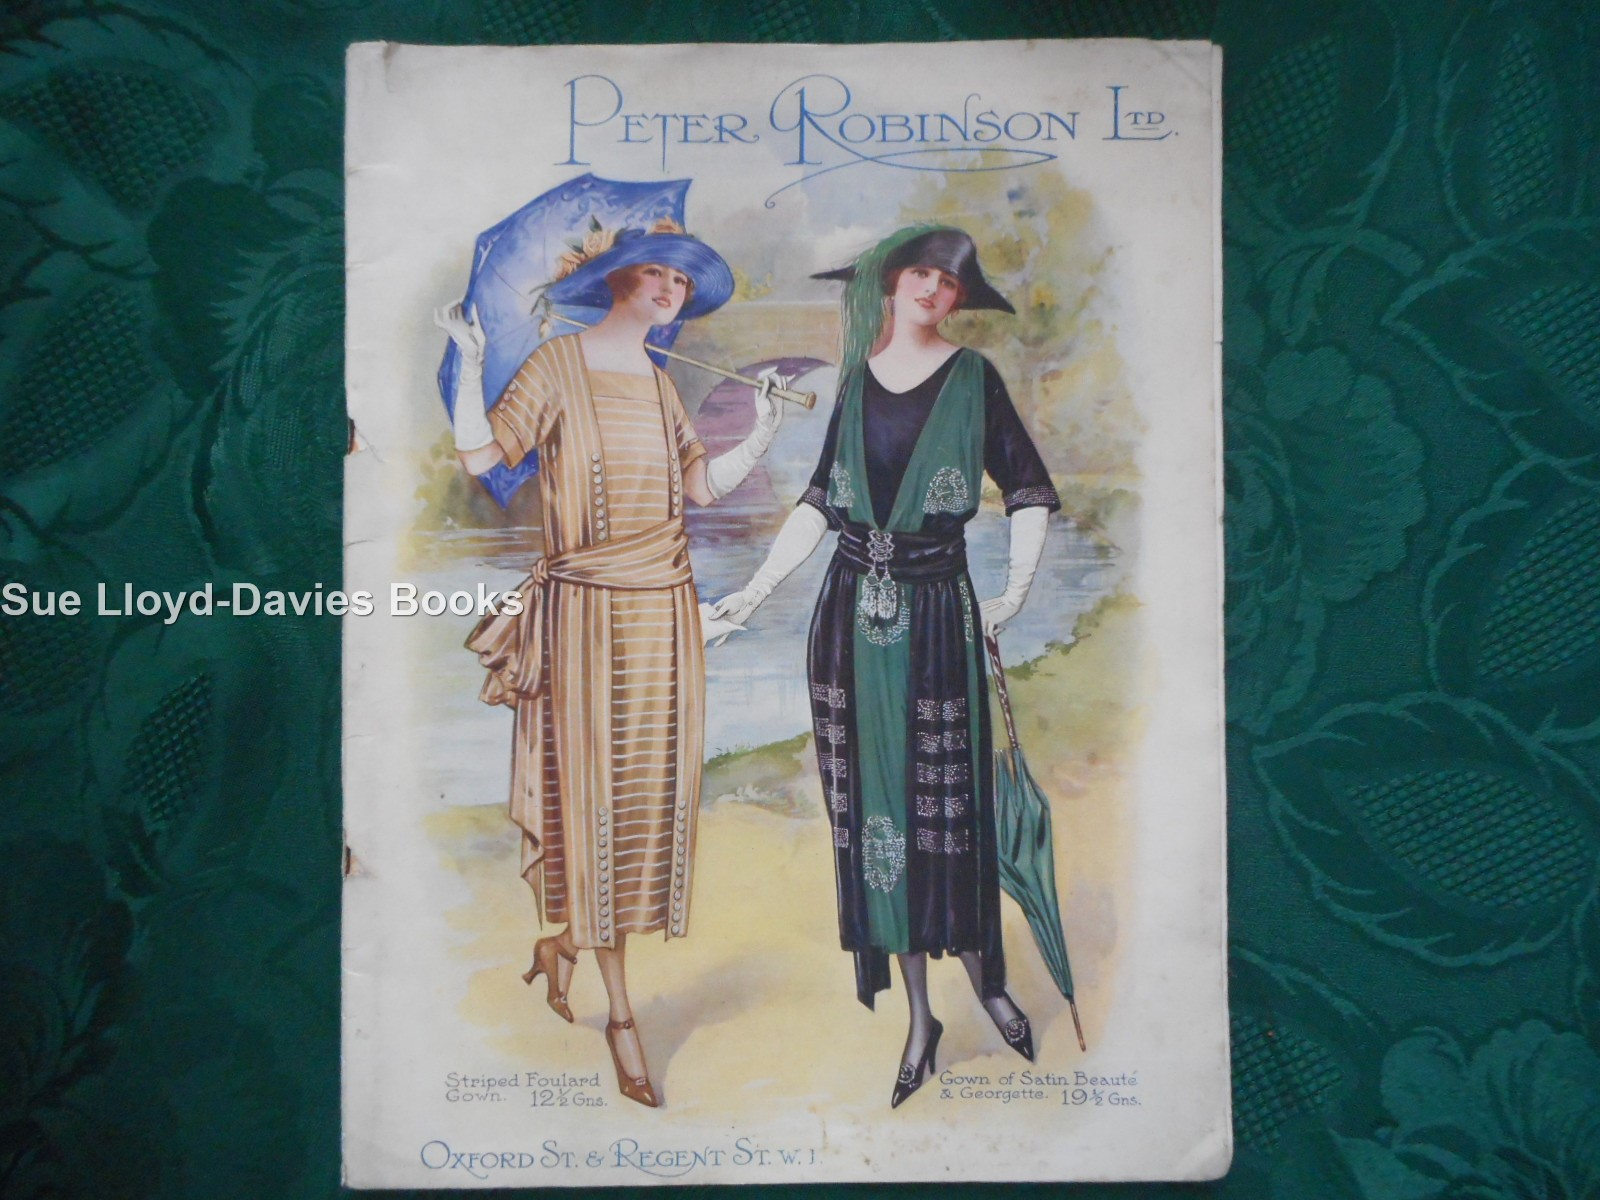 Image for Catalogue of Spring and Summer Fashions 1921. Peter Robinson Ltd, Oxford St & Regent St. W1.